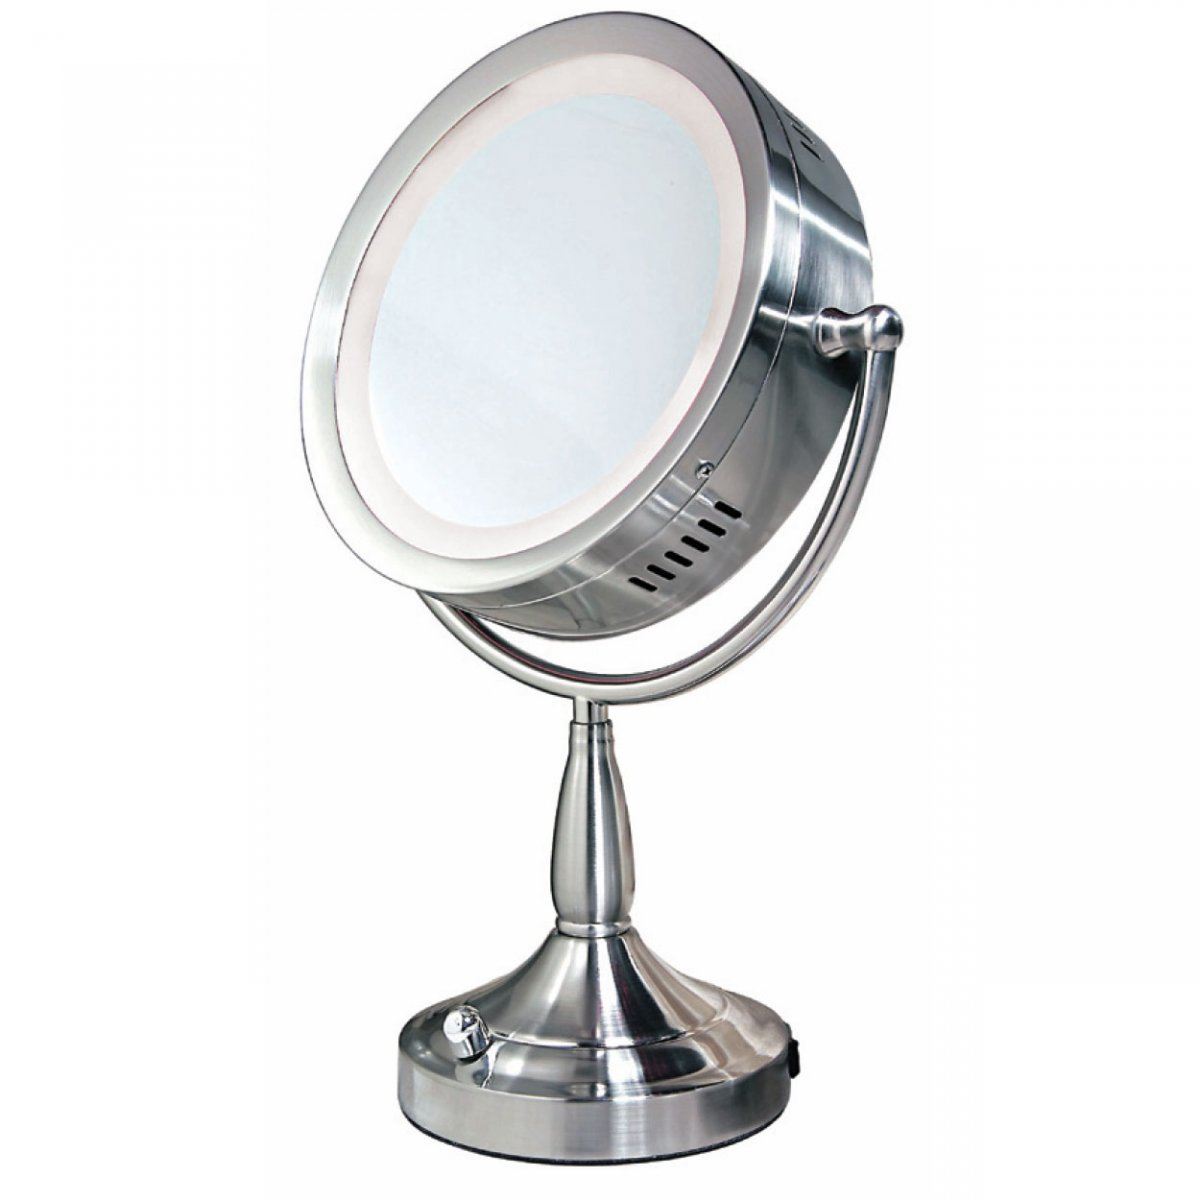 Lighted Vanity Makeup Mirror Table : Bedroom: Using Best Lighted Makeup Mirror For Pretty Home Accessories Ideas Stephaniegatschet.com